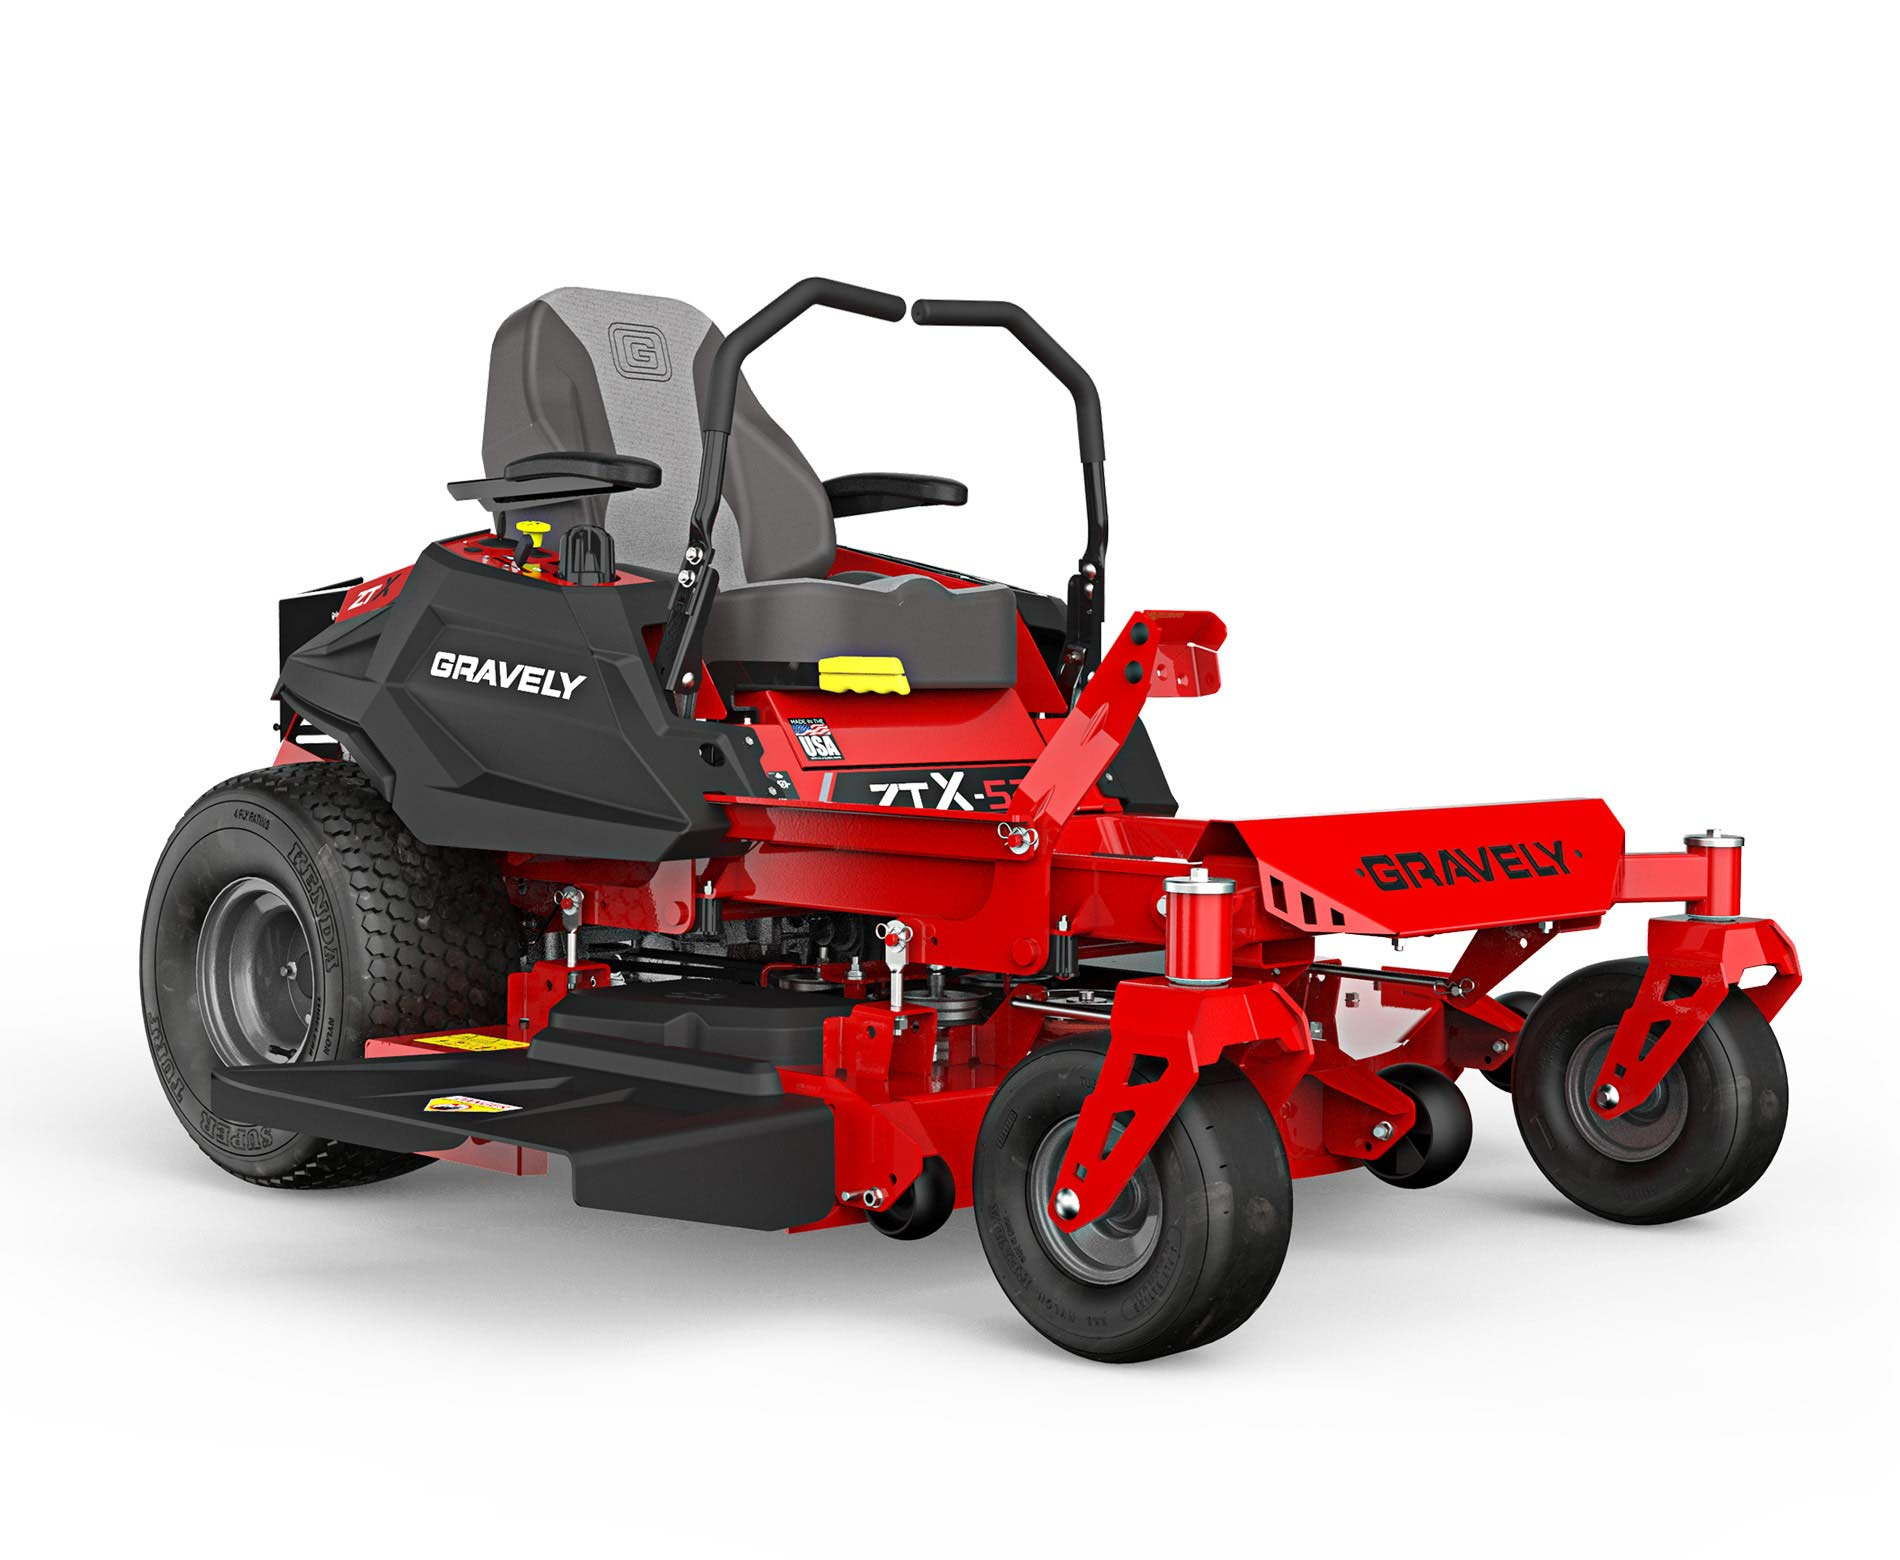 Gravely ZT X Zero-Turn Mower